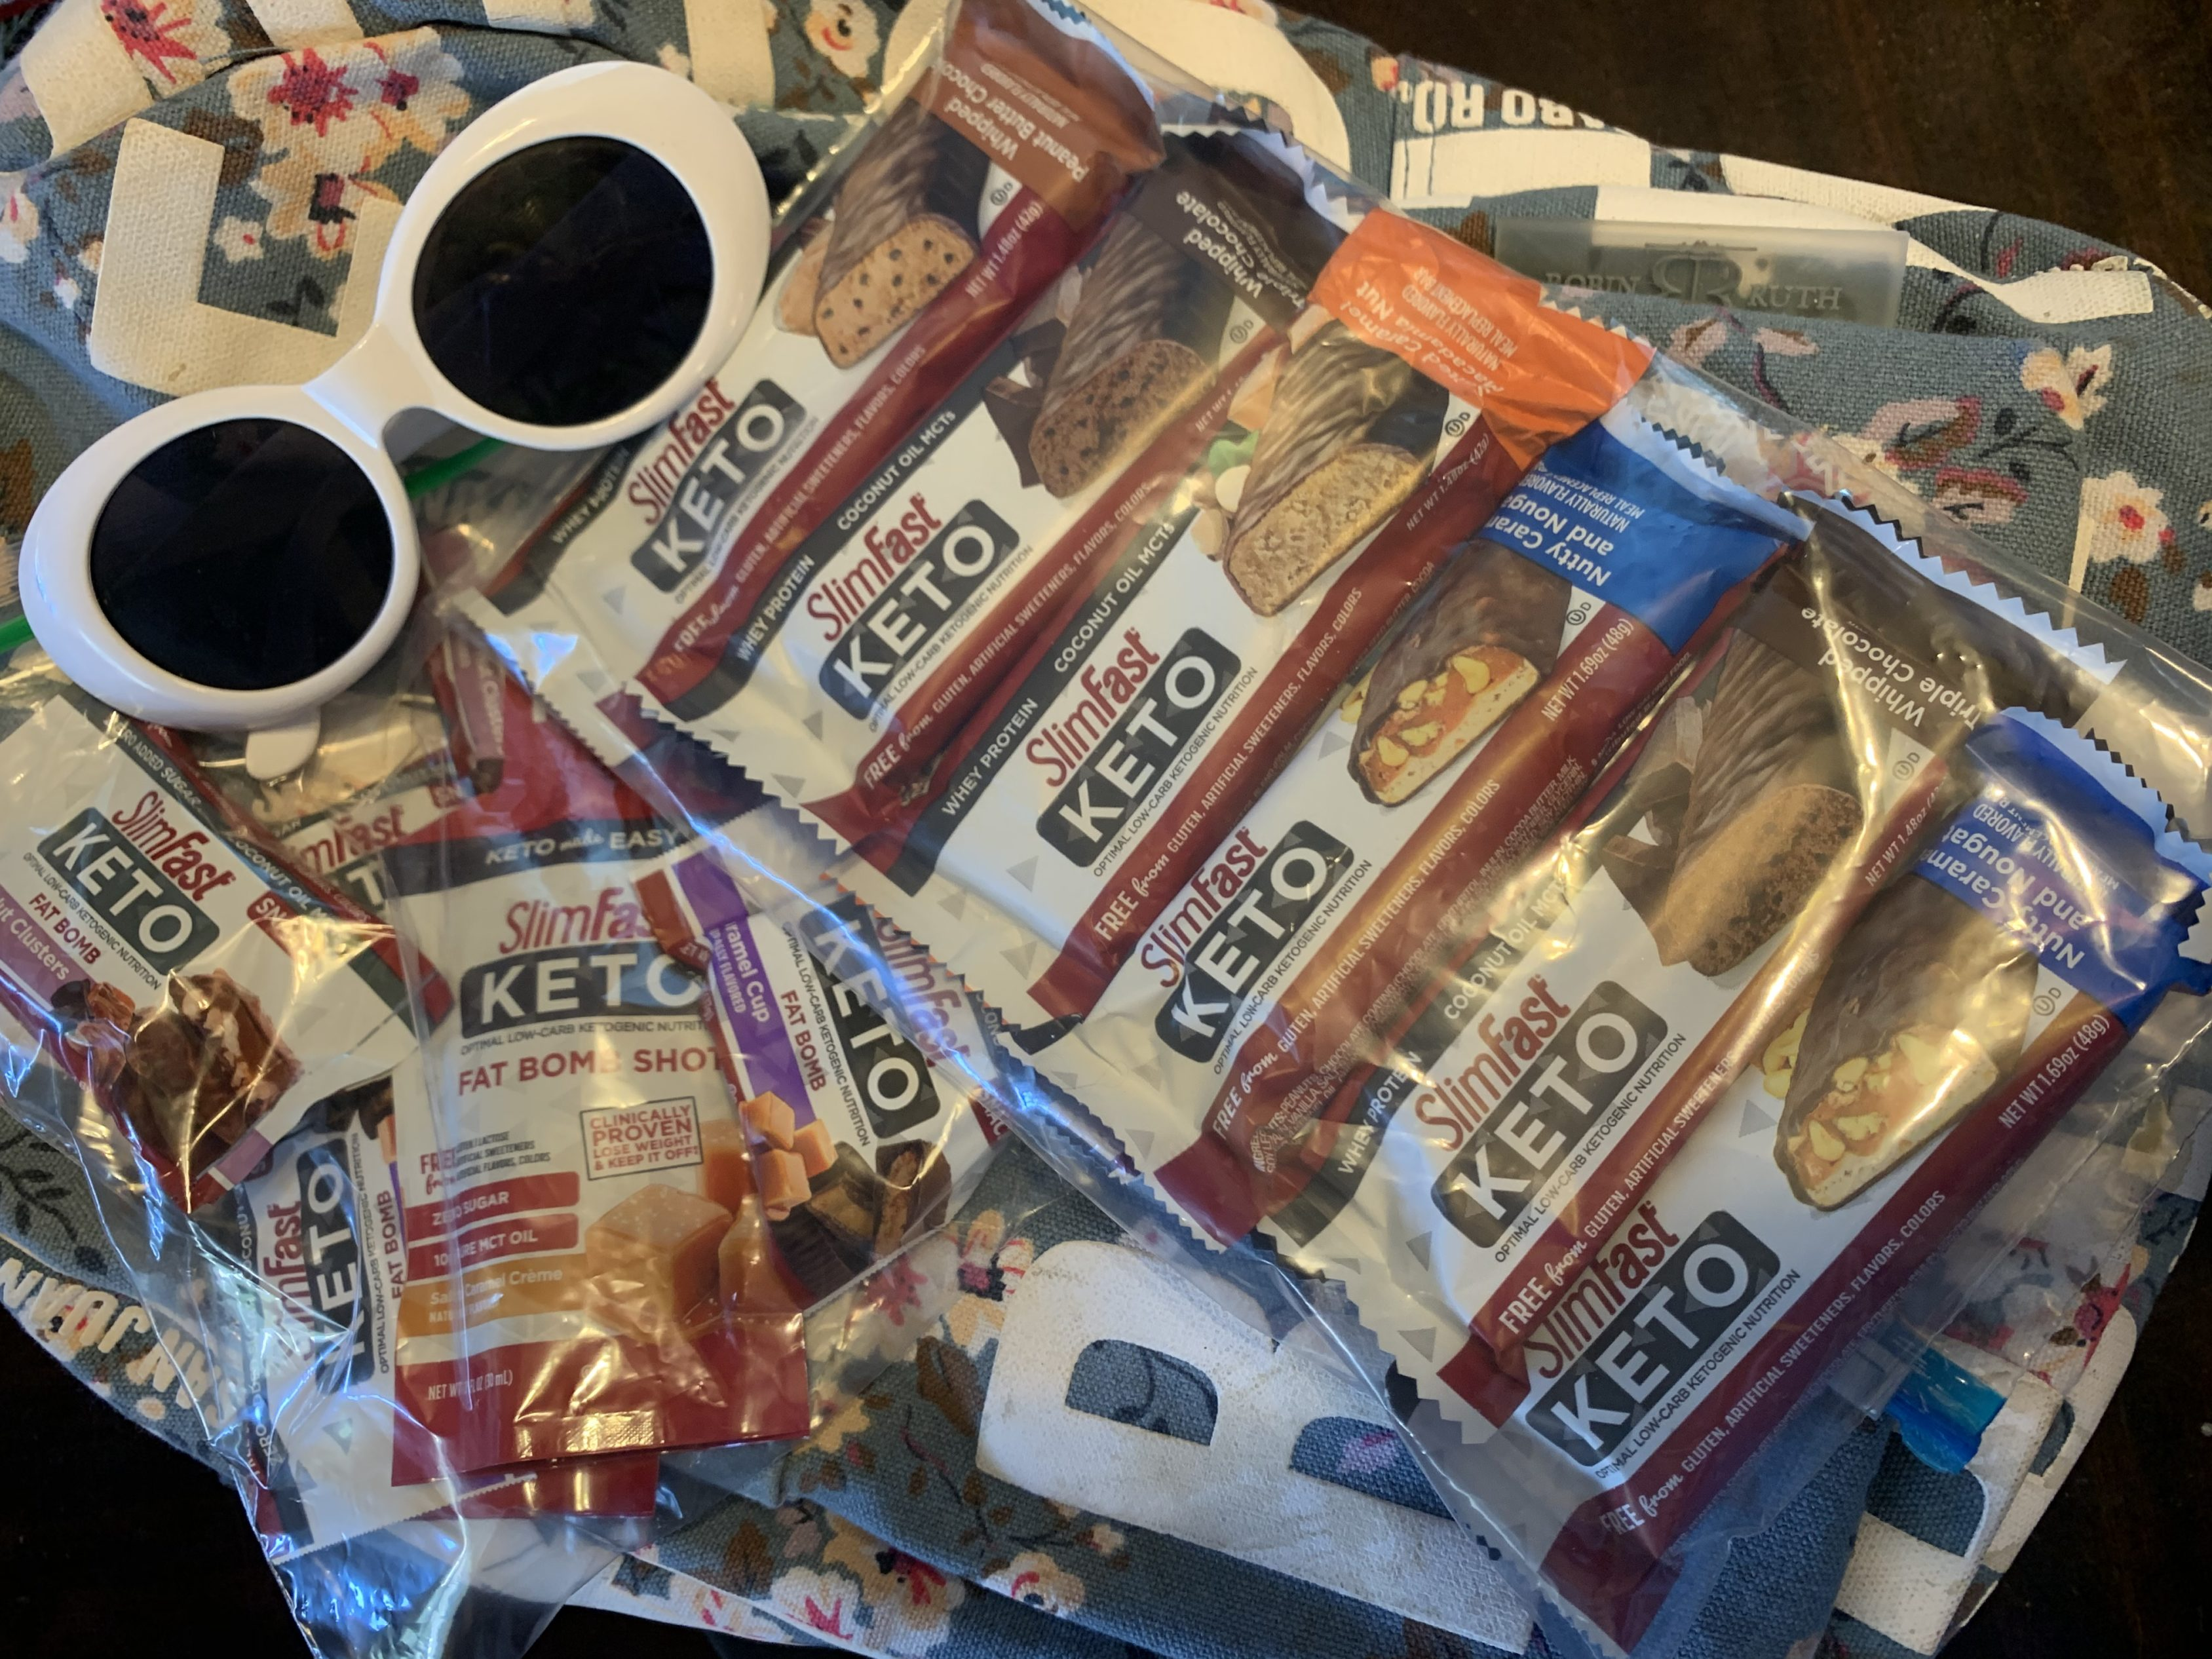 Bags full of SlimFast Keto products